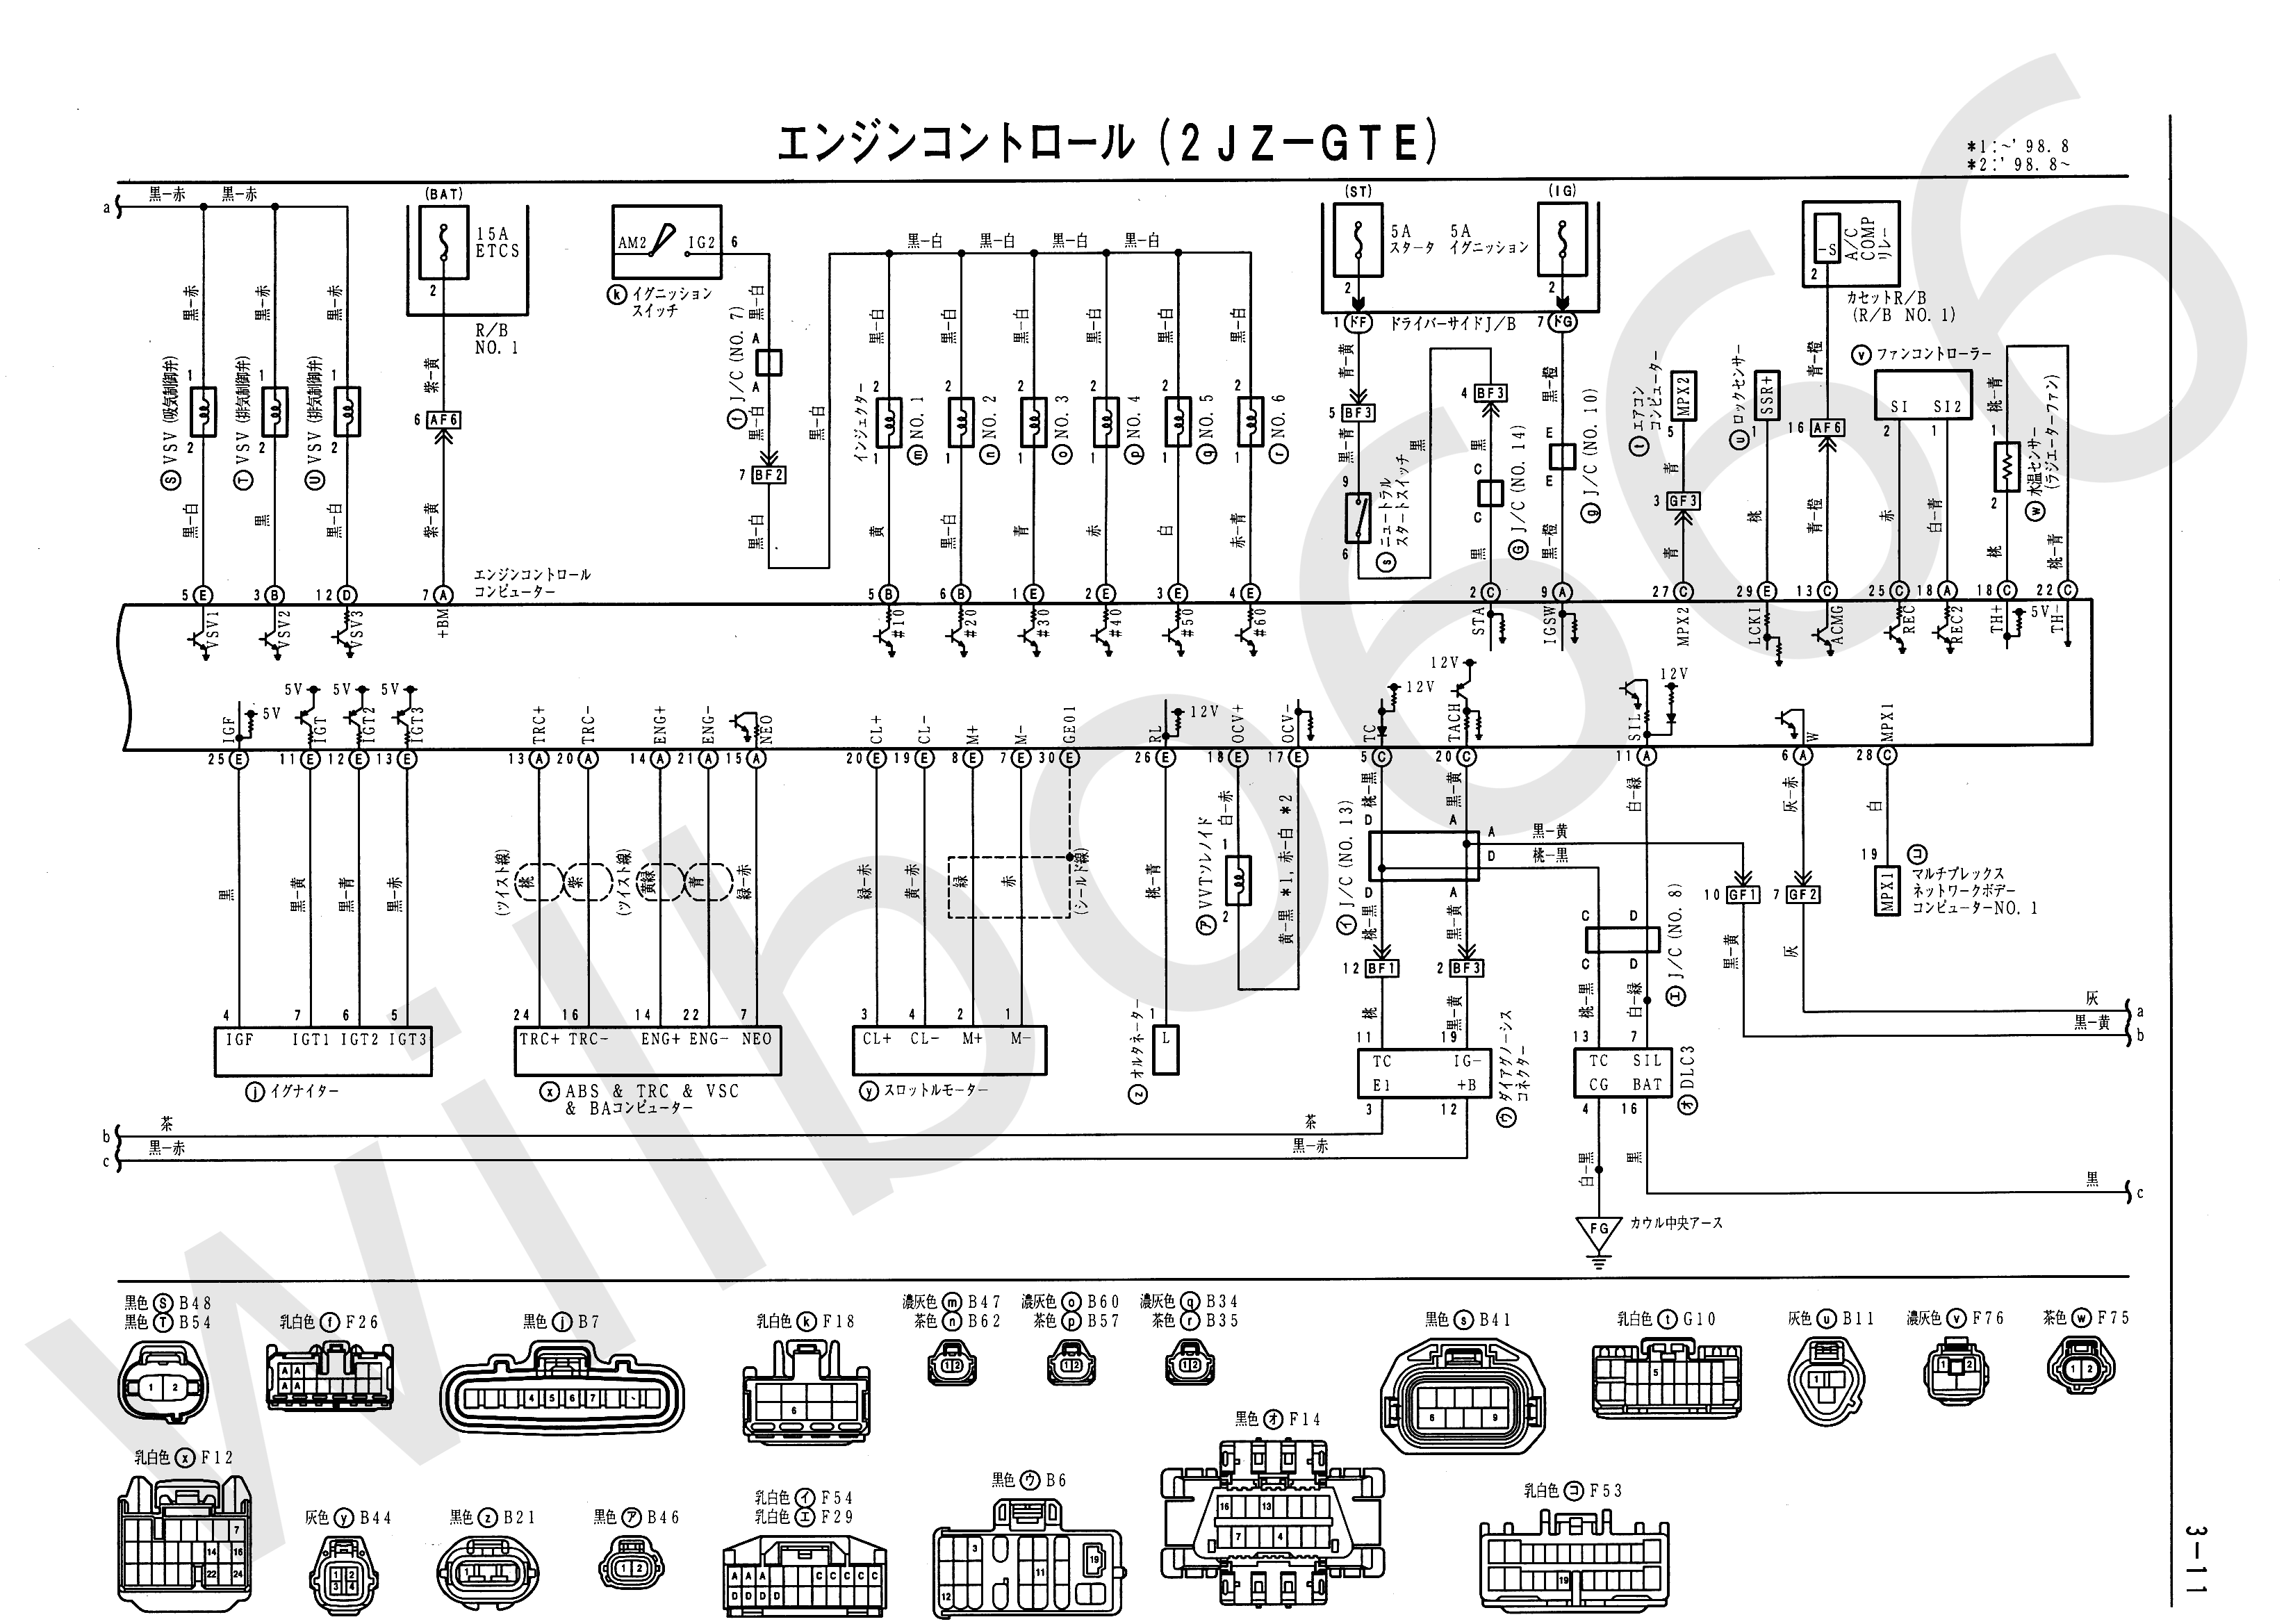 JZS161 Electrical Wiring Diagram 6748505 3 11 wilbo666 2jz gte vvti jzs161 aristo engine wiring 2jzgte vvti wiring harness at suagrazia.org